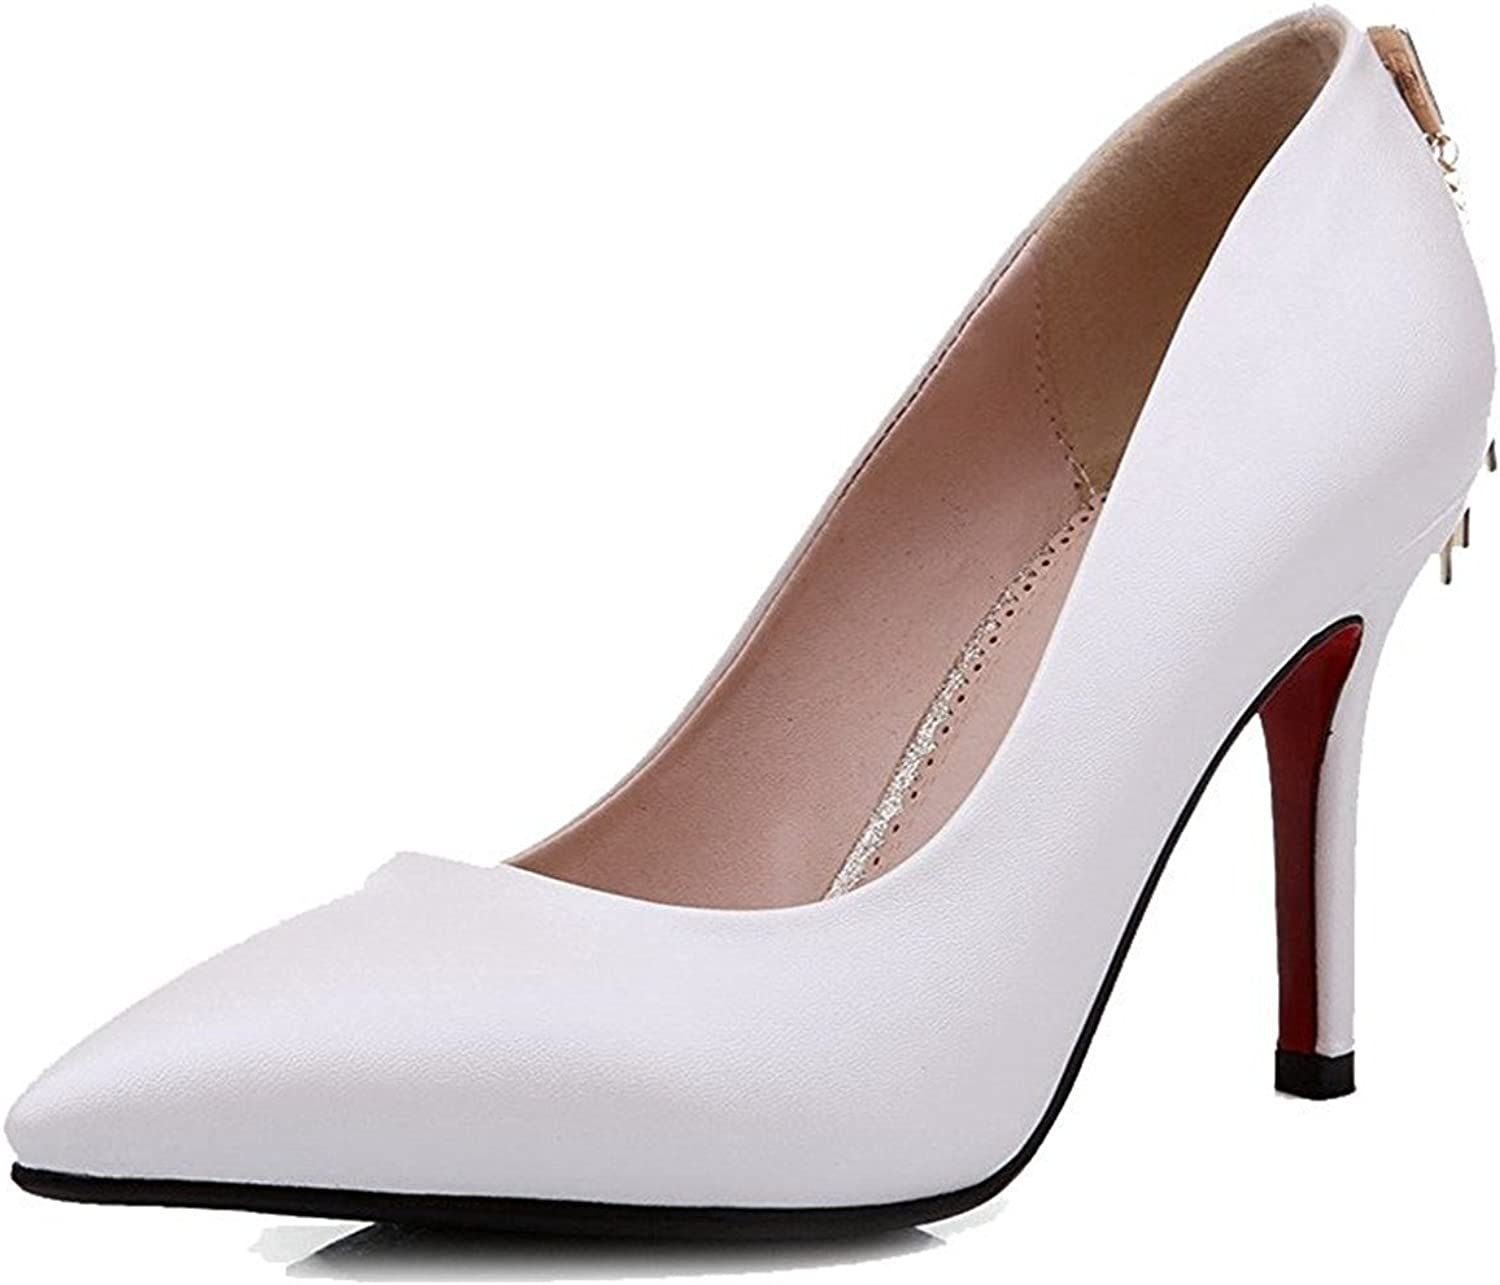 Tirahse Comfortable Women's Soft Material Pointed Closed Toe High-Heels Pull-on Solid Pumps-shoes